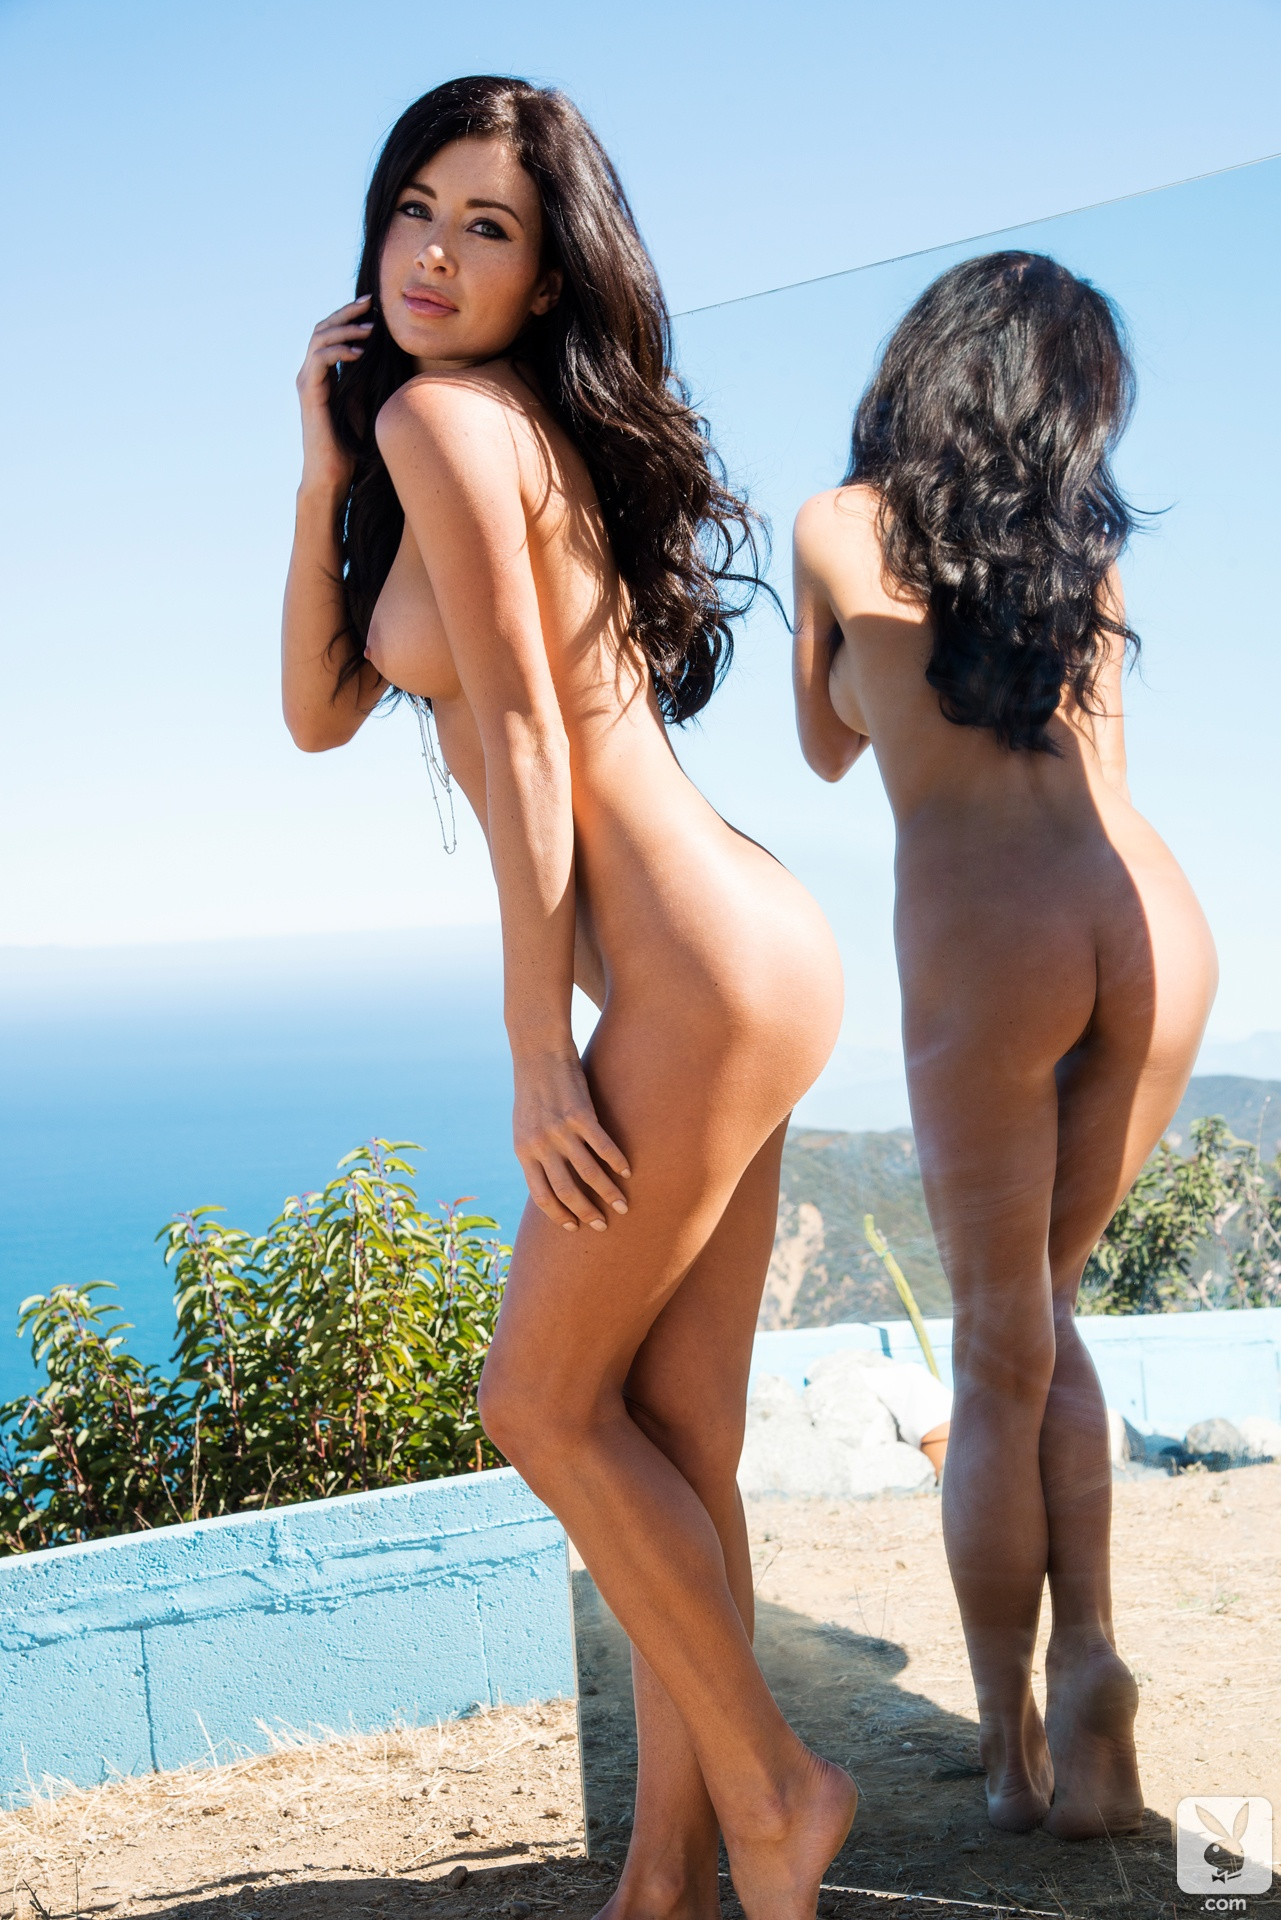 gemma-lee-farrell-miss-november-2013-playboy-19